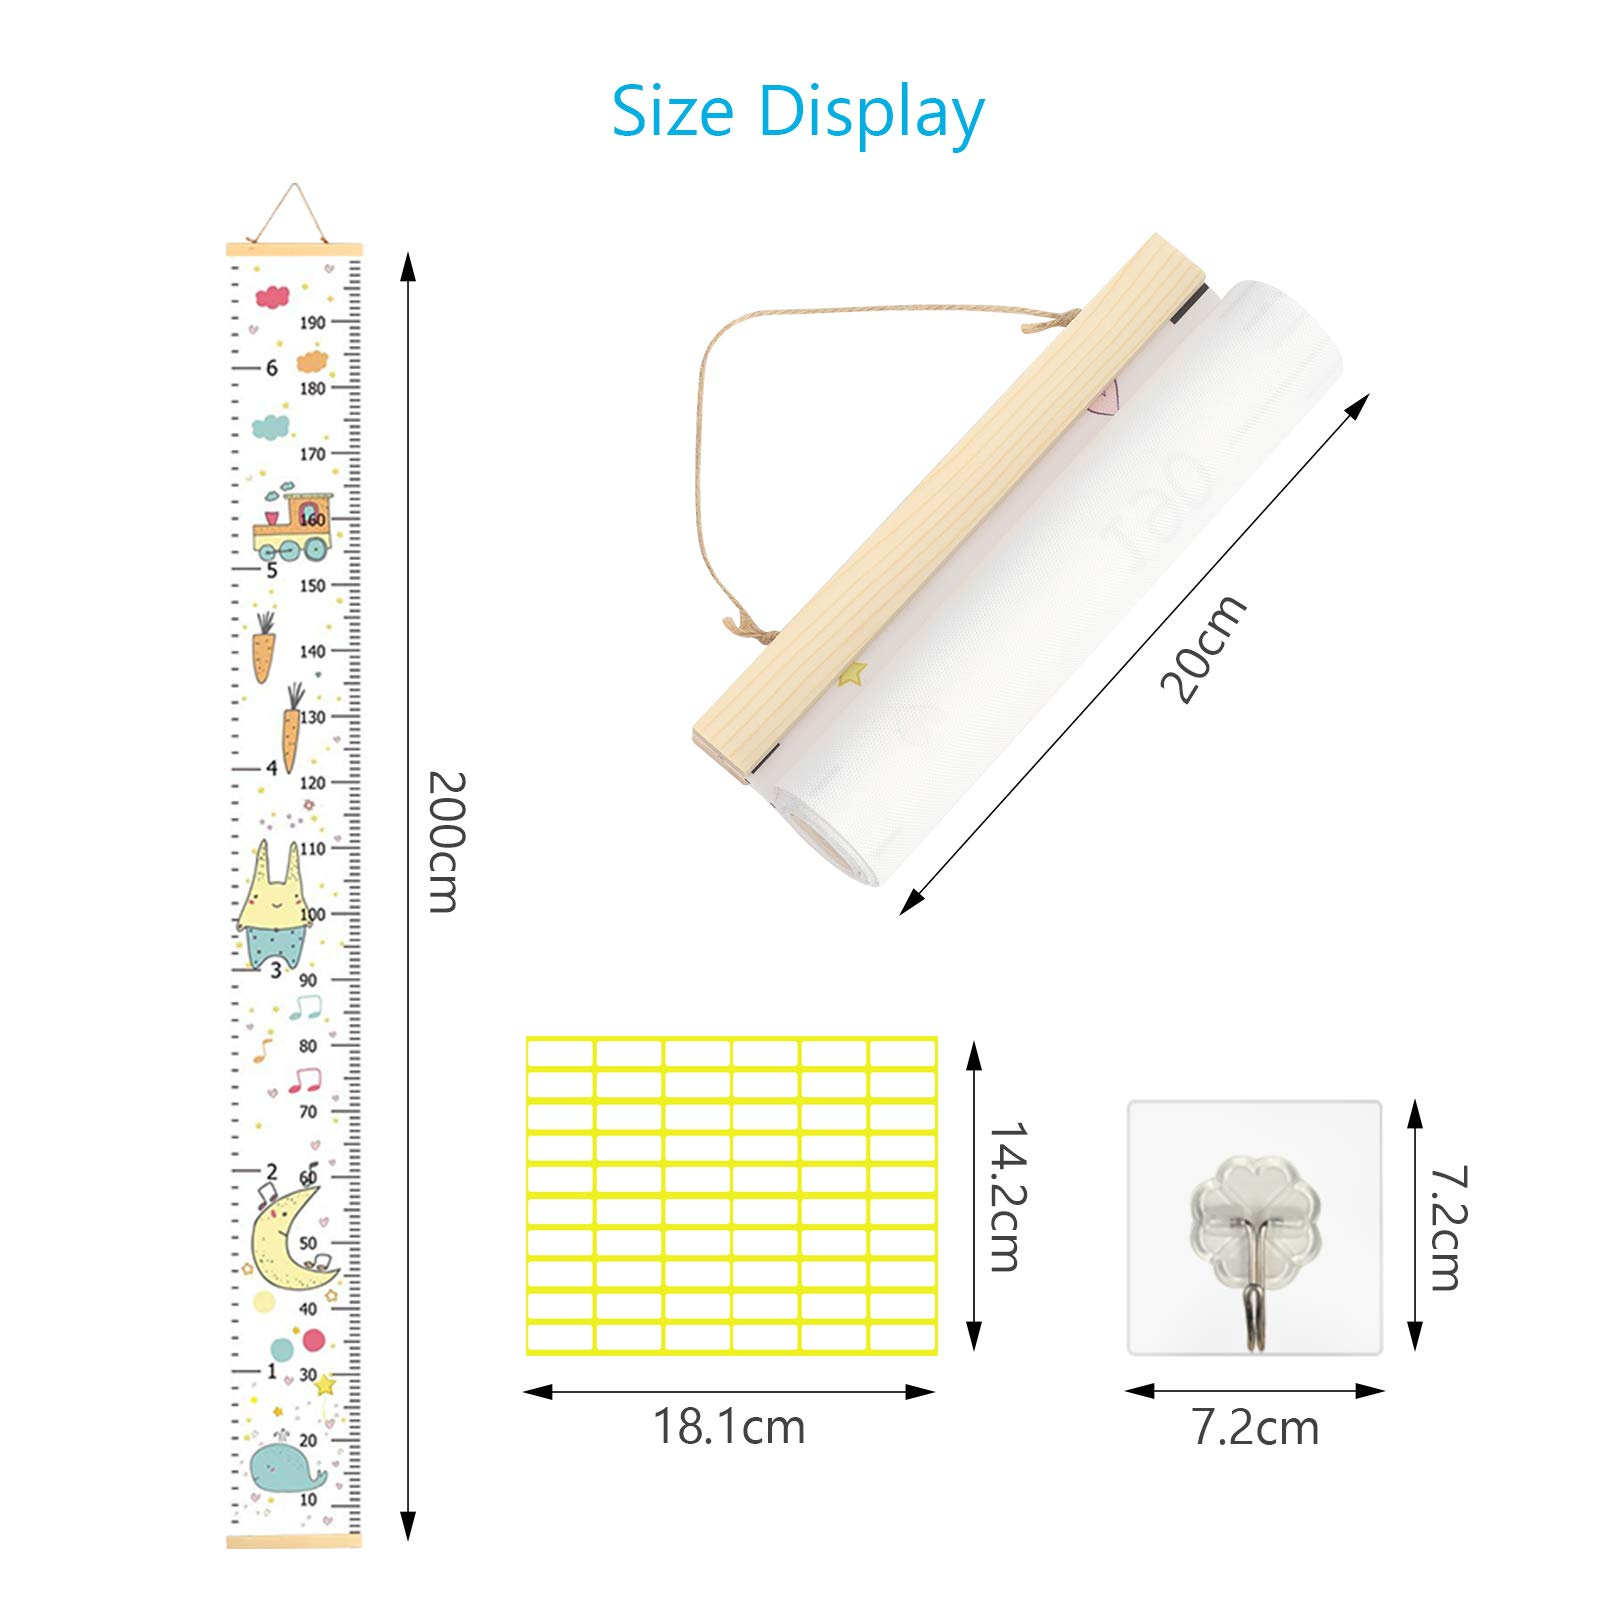 TAZEMAT Height Chart Removable Hanging Growth Chart for Kids Girls Boys Roll-up Children Height Record Chart Canvas Portable Waterproof Baby Growth Measurement Ruler 200 x 20 cm